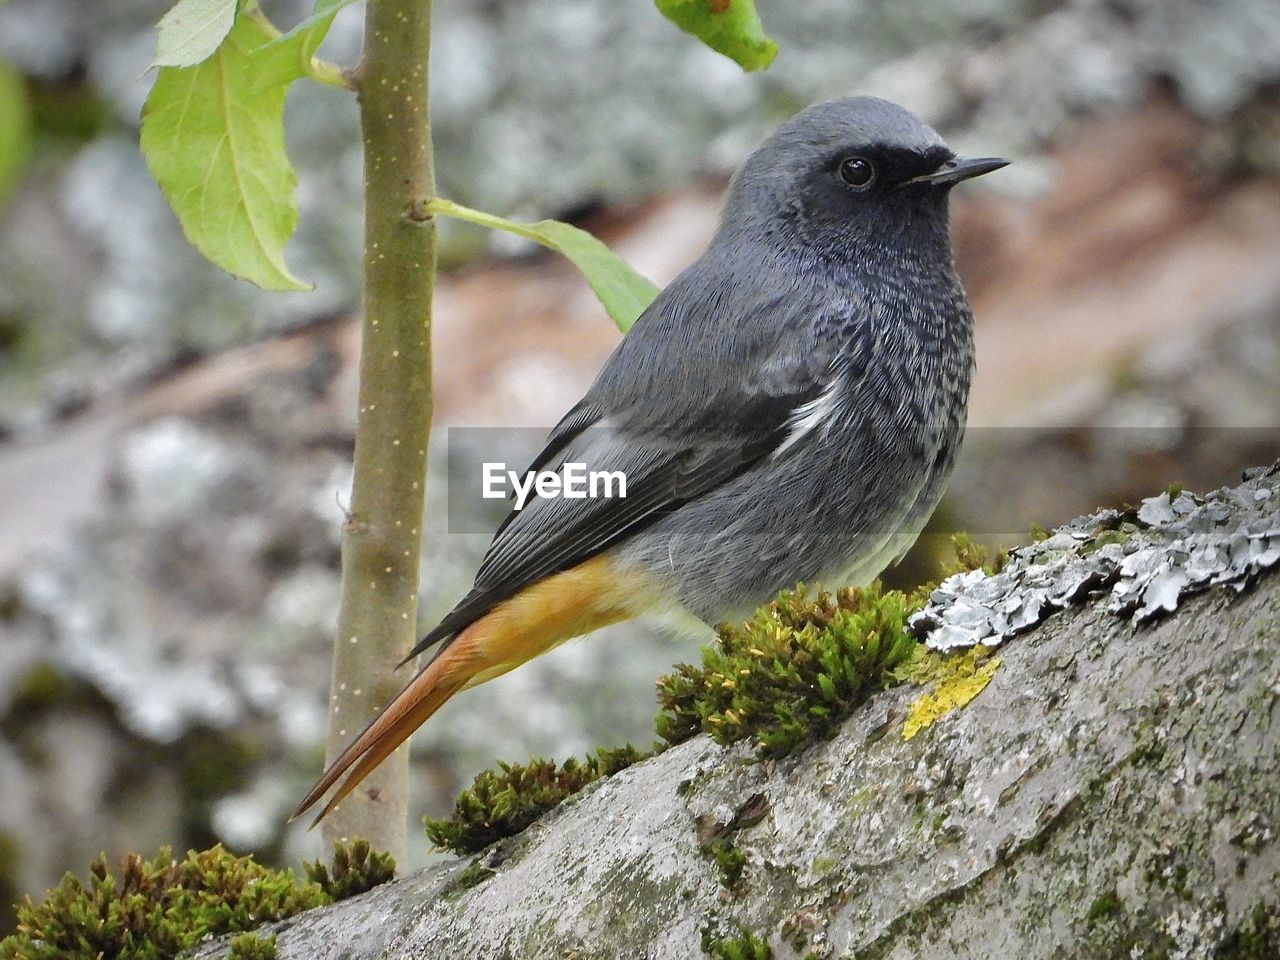 animal themes, animal, animals in the wild, animal wildlife, vertebrate, one animal, bird, perching, focus on foreground, no people, day, close-up, plant, tree, nature, black color, outdoors, rock, solid, rock - object, blackbird